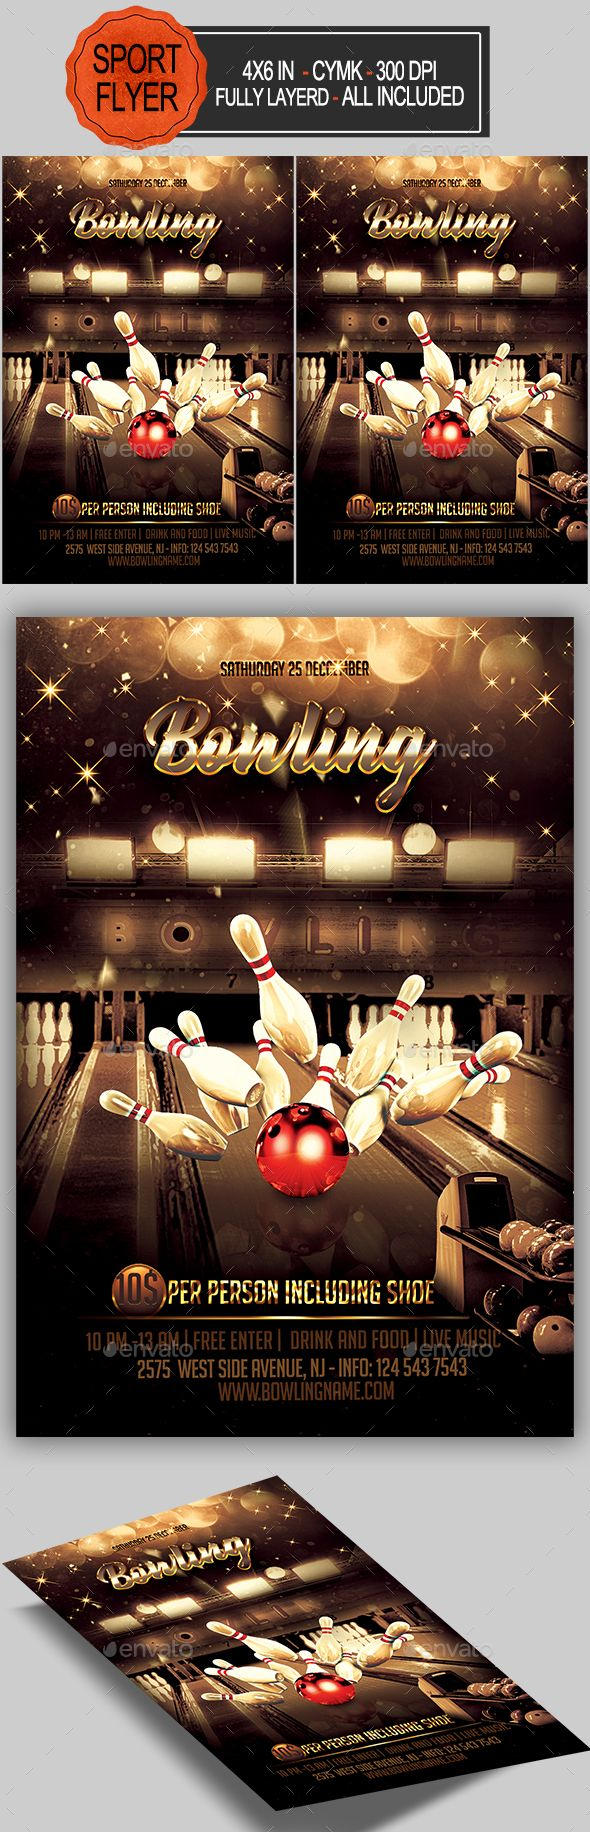 Bowling Flyer  Flyer Template Fonts And Template